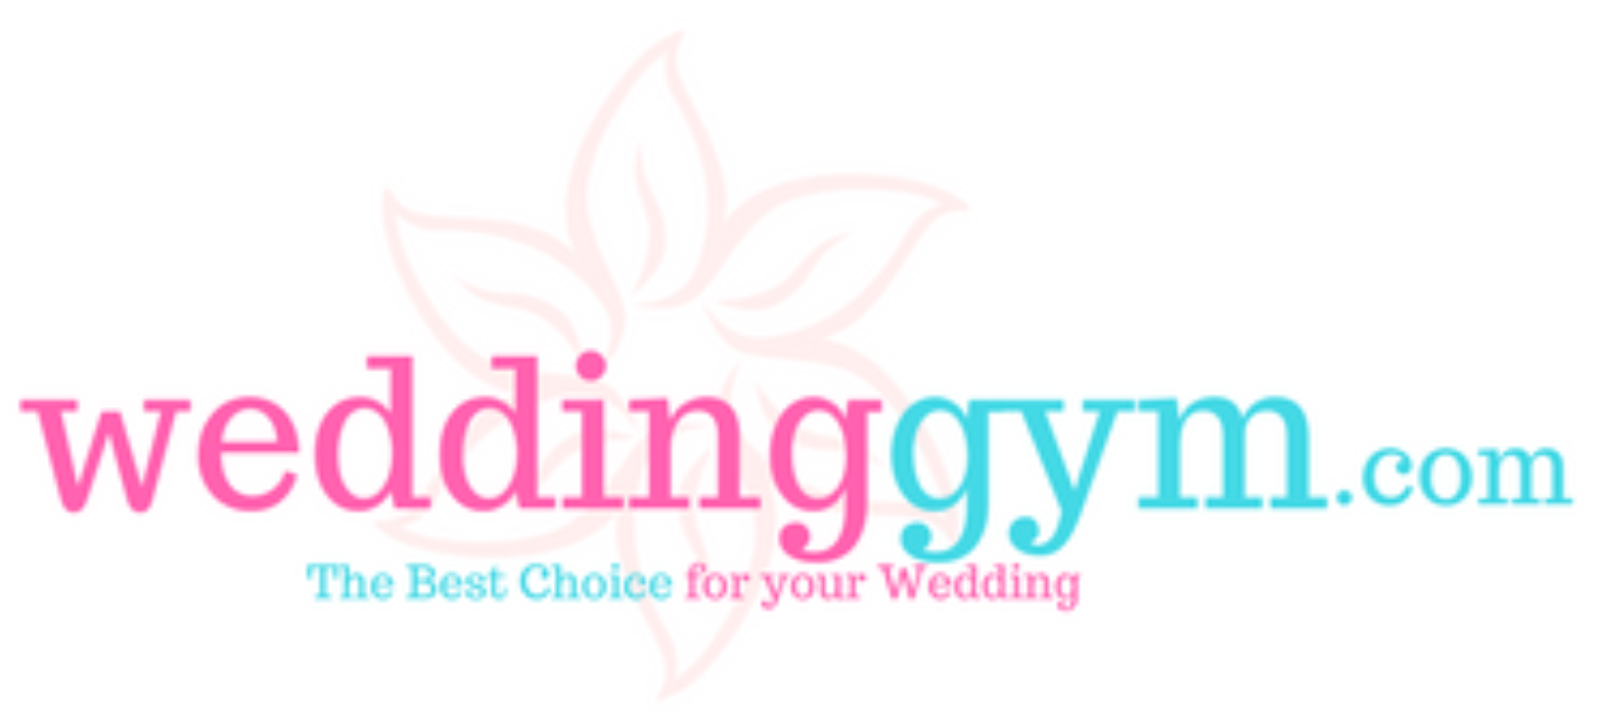 WeddingGym.com | The Best Choice For Your Wedding